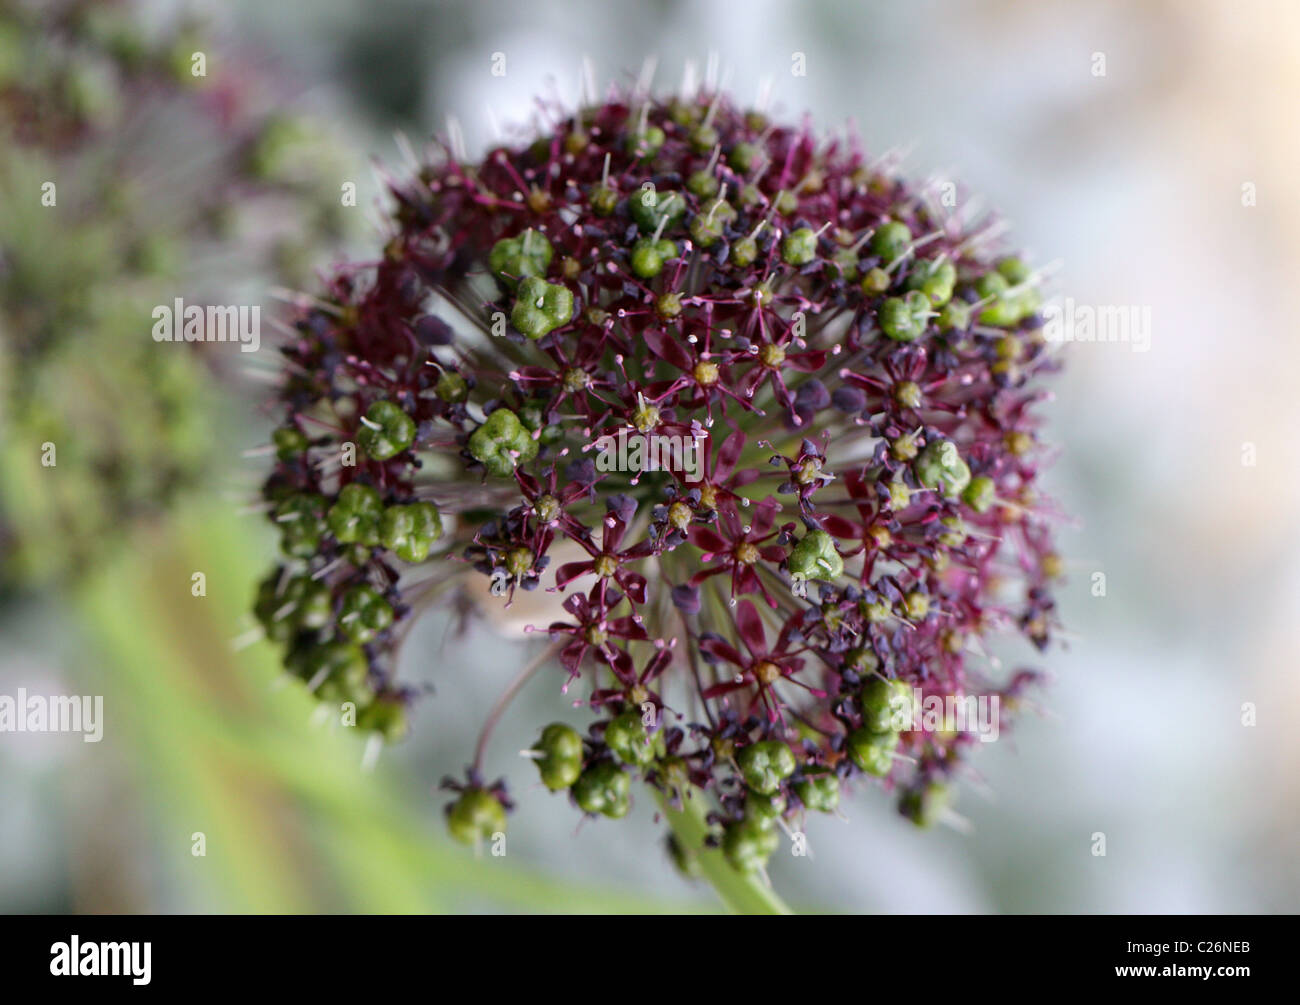 Himalayan Onion, Allium wallichii, Alliaceae, Himalayas. - Stock Image